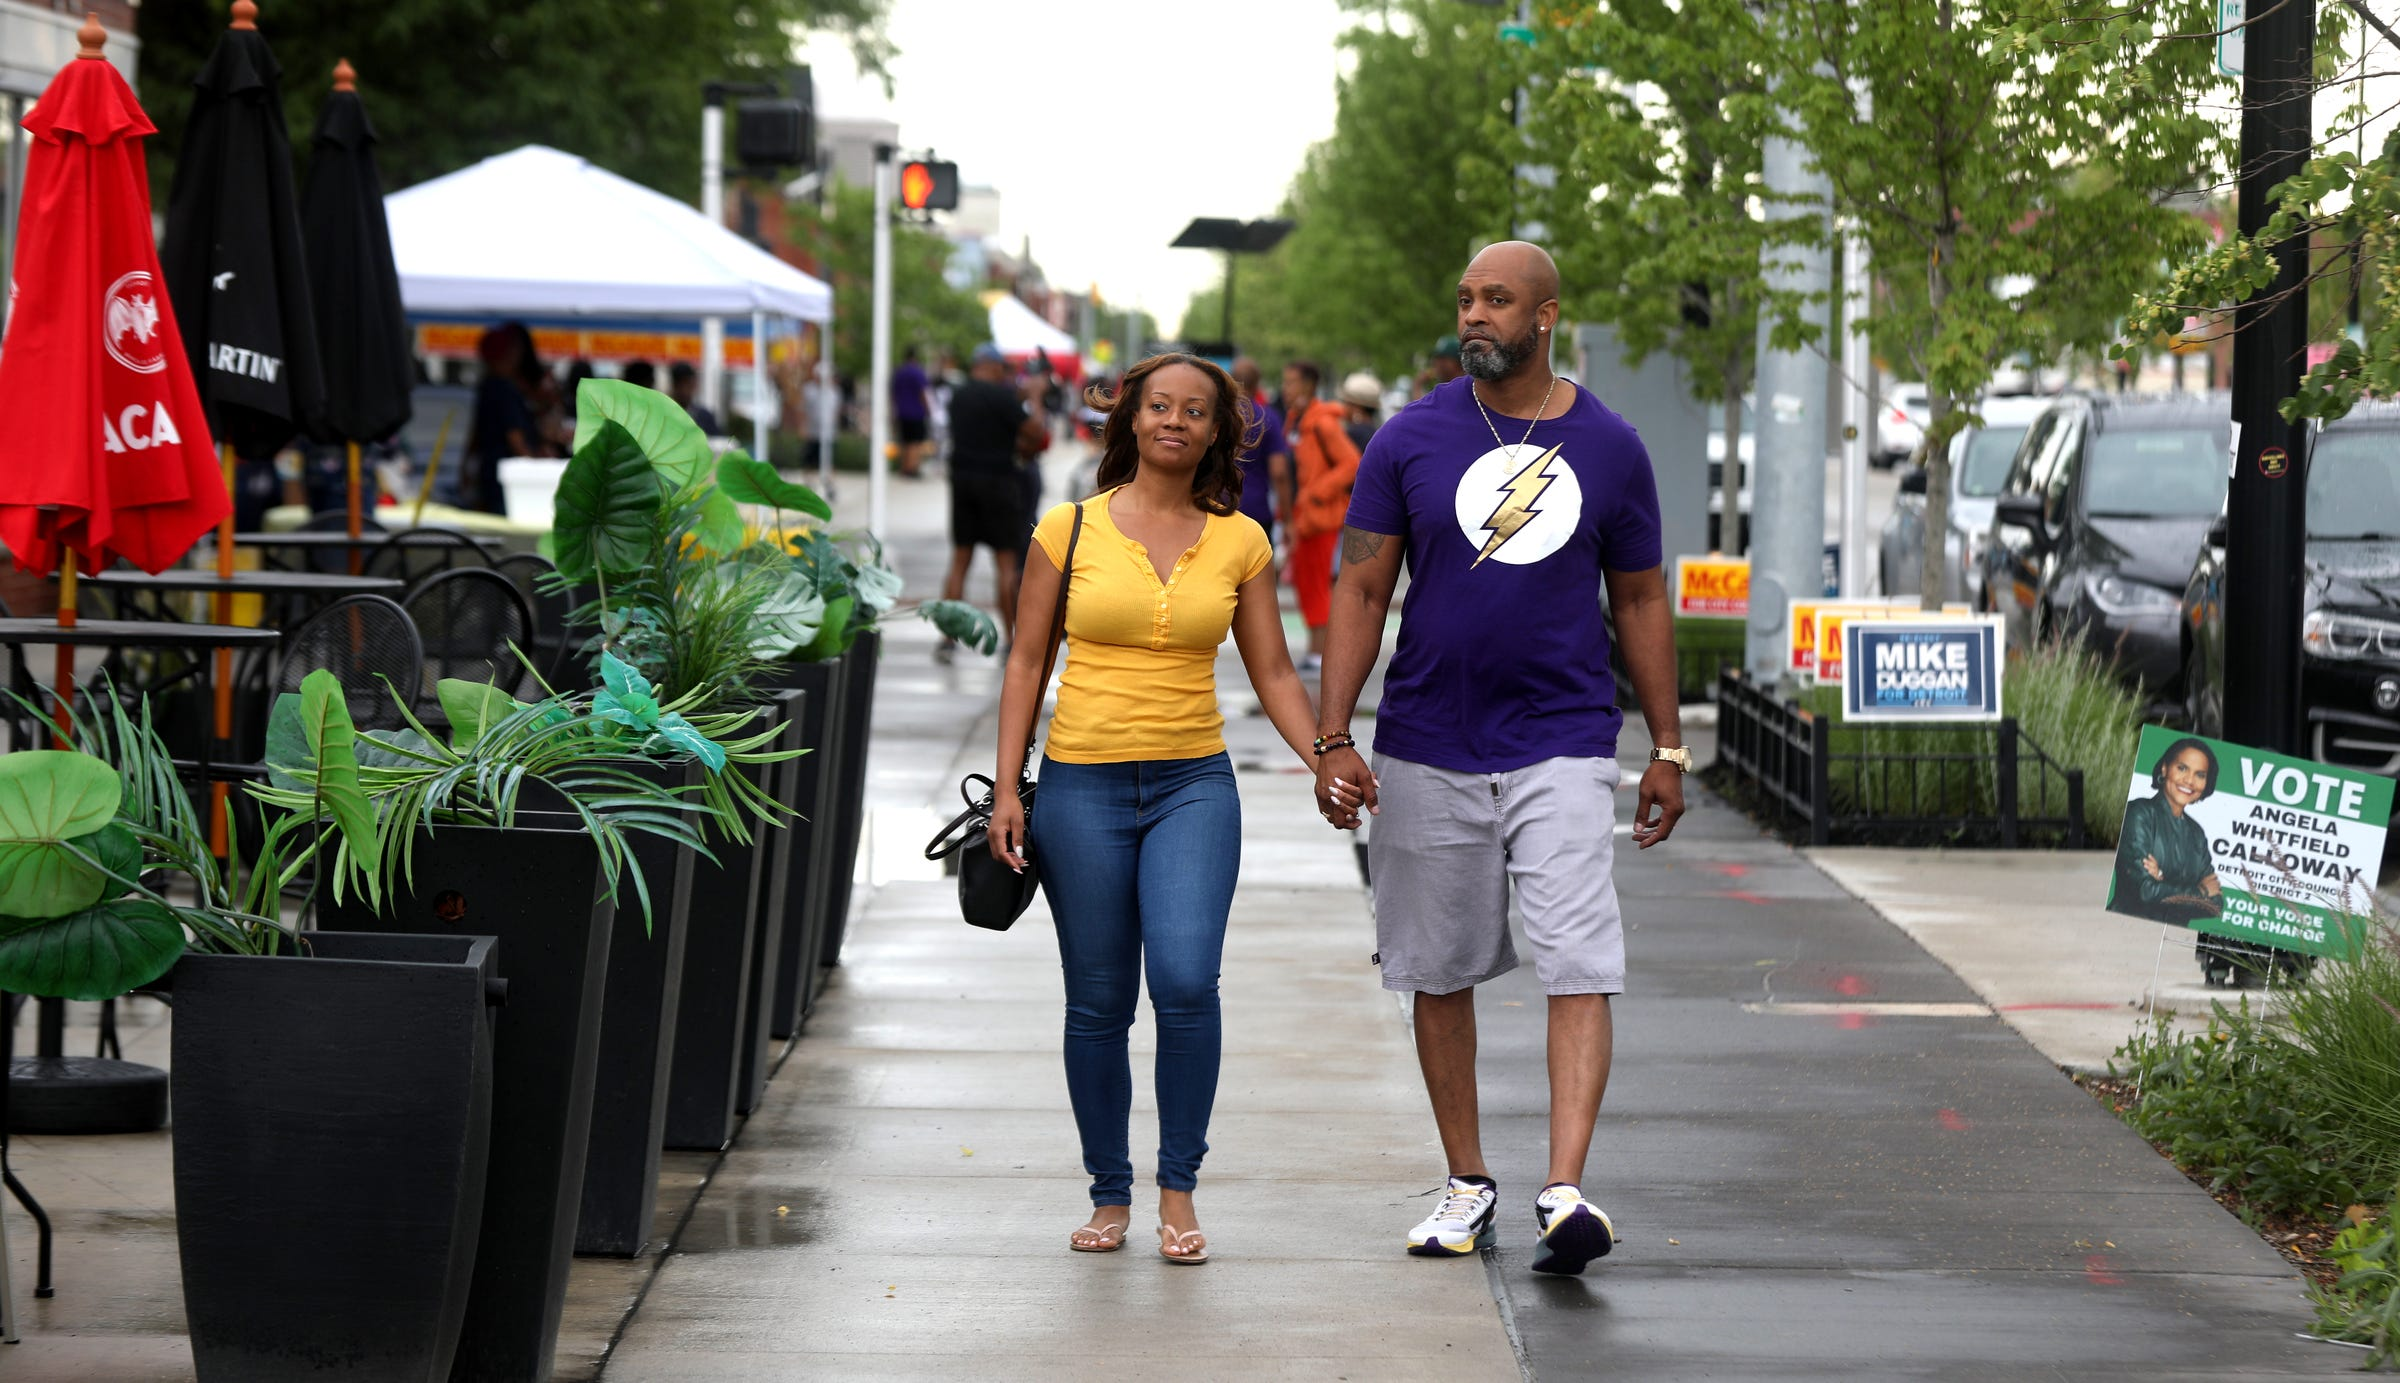 (L to R) Tiffany and Damon Kimbrough of Southfield walk and window shop during Juneteenth celebrations on the Avenue of Fashion on Livernois in Detroit on June 19, 2021.